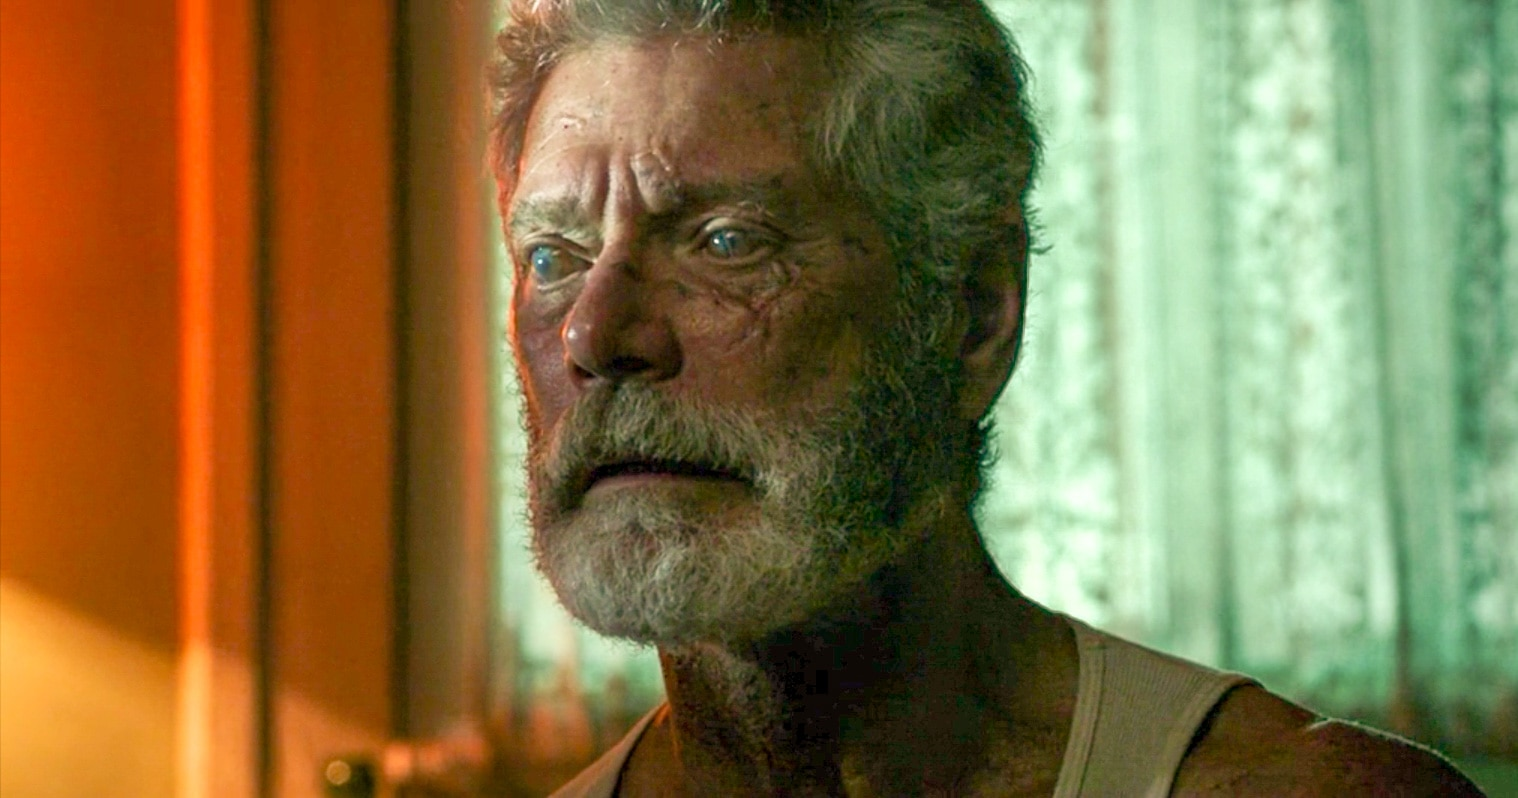 DONT BREATHE 2 edited - DON'T BREATHE 2 Begins Filming in April with New Director!